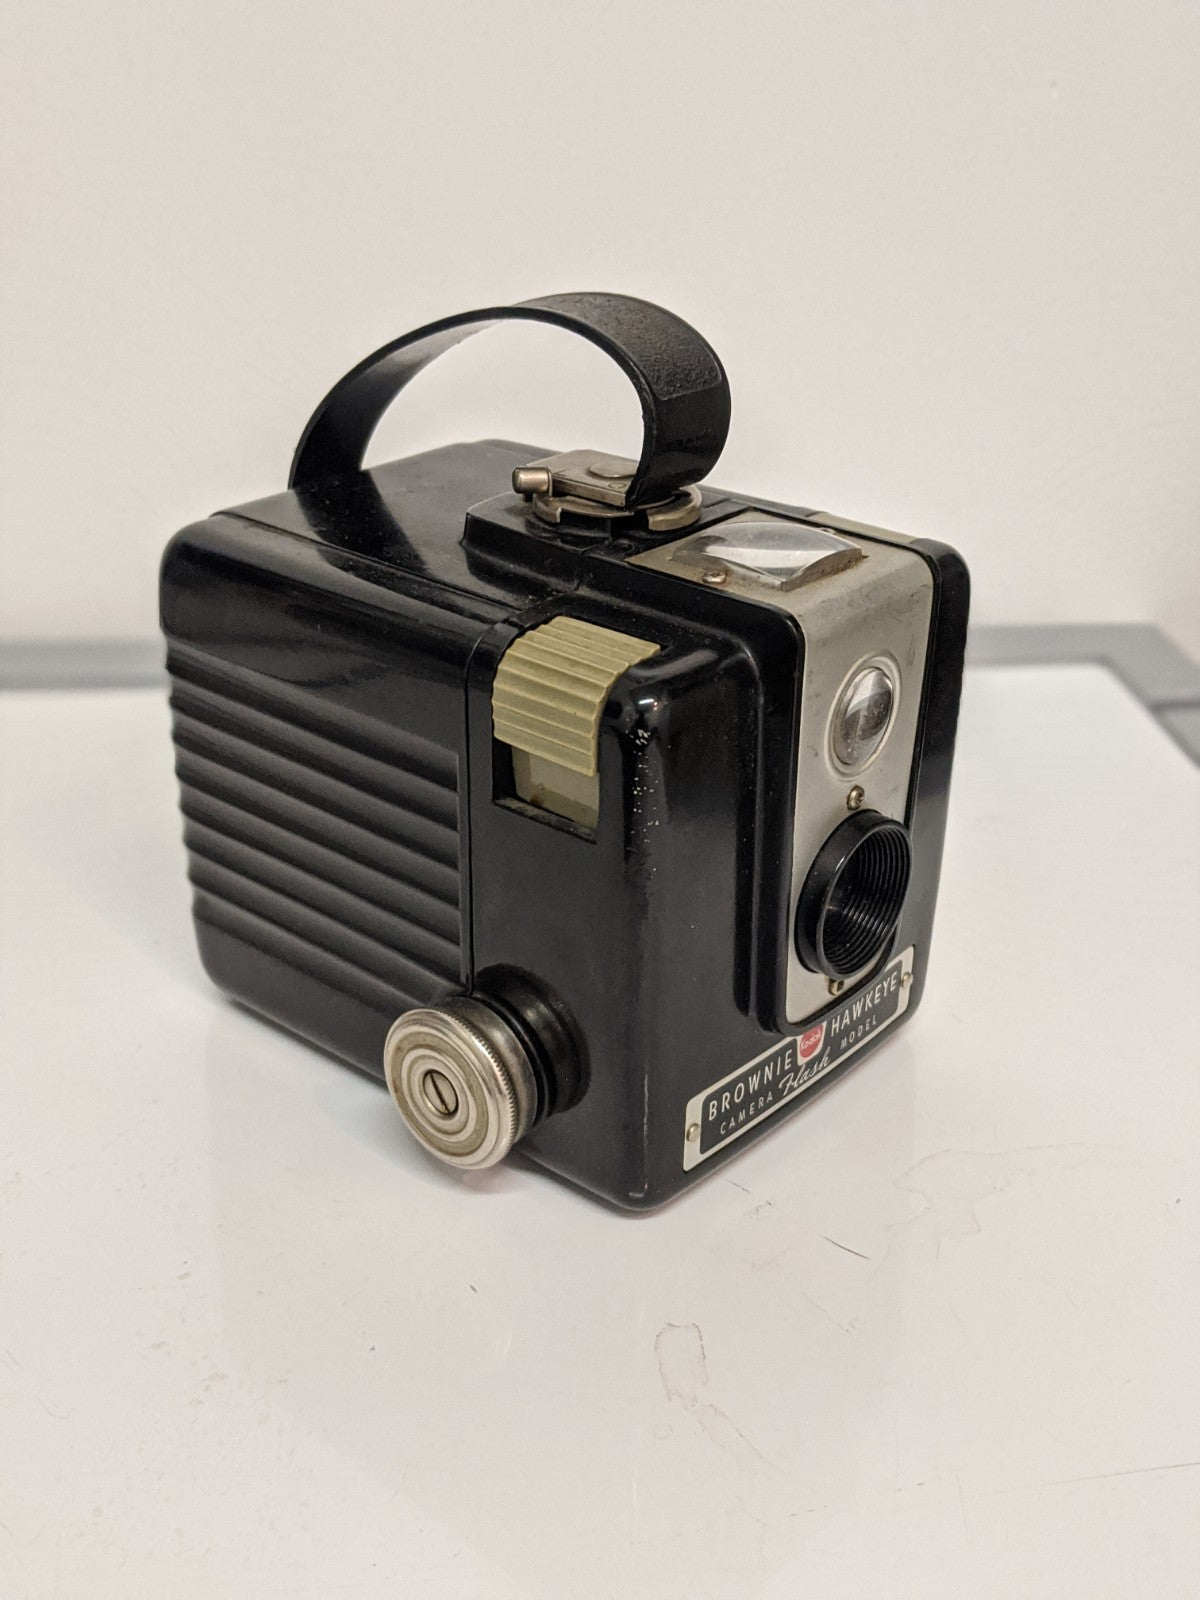 Kodak Brownie Hawkeye Flash Model Camera